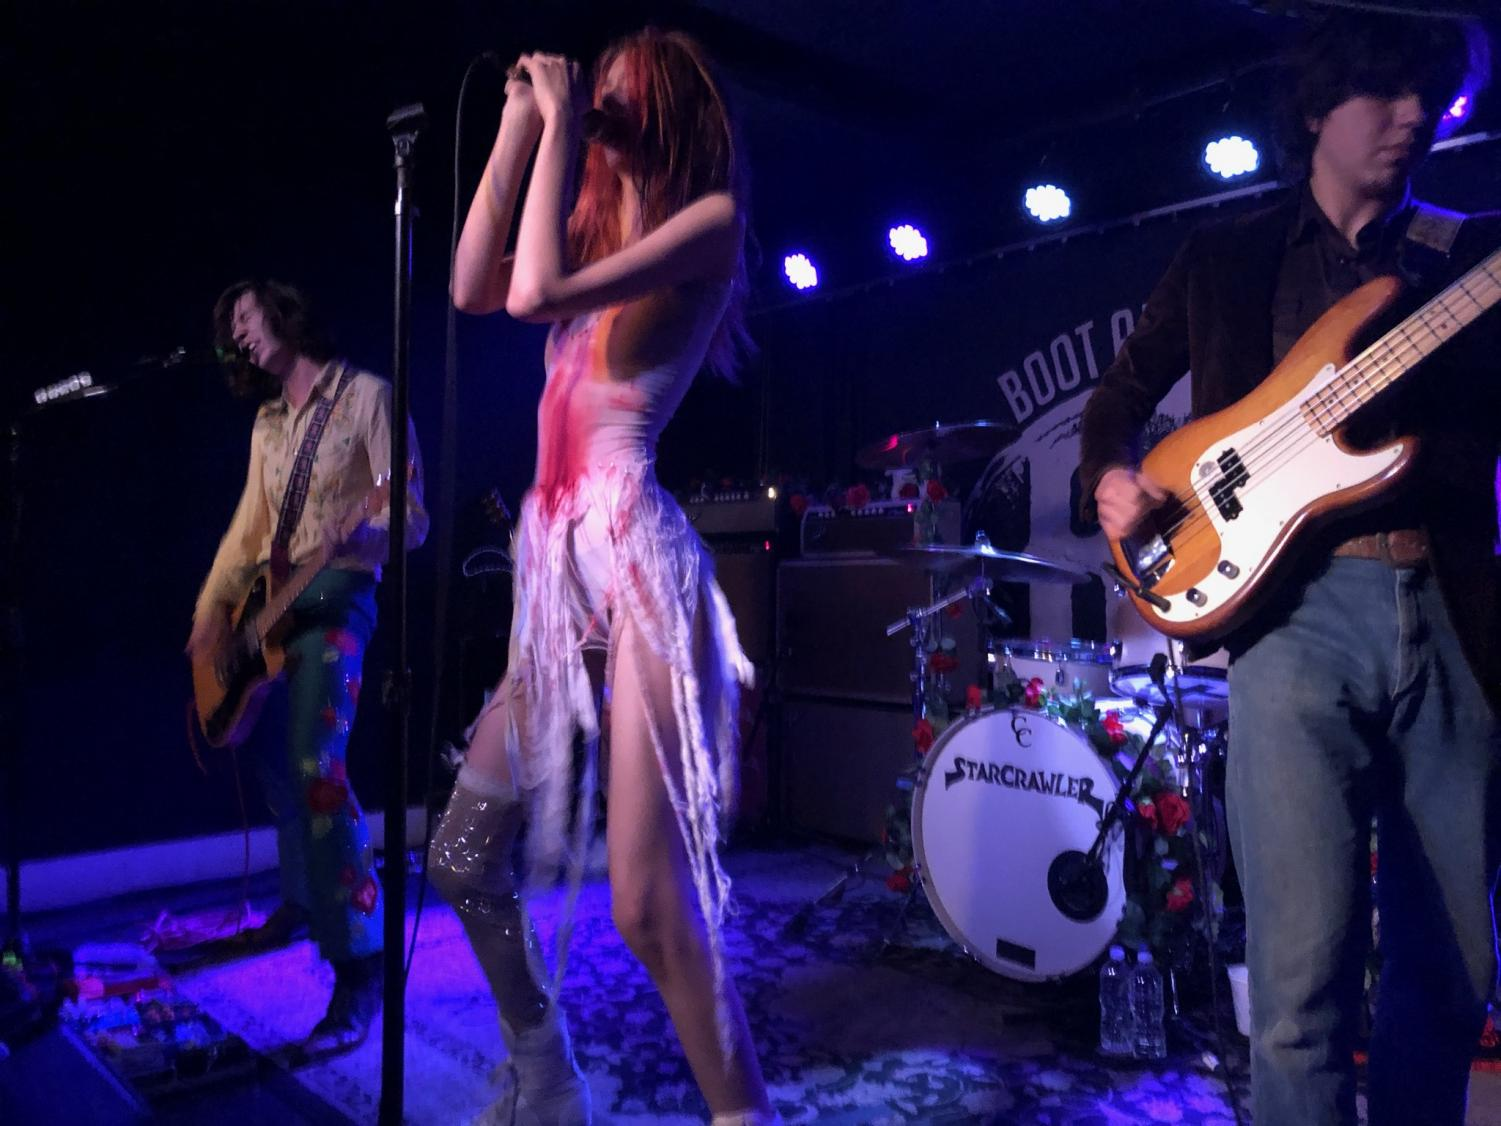 Starcrawler Stomps at Boot & Saddle